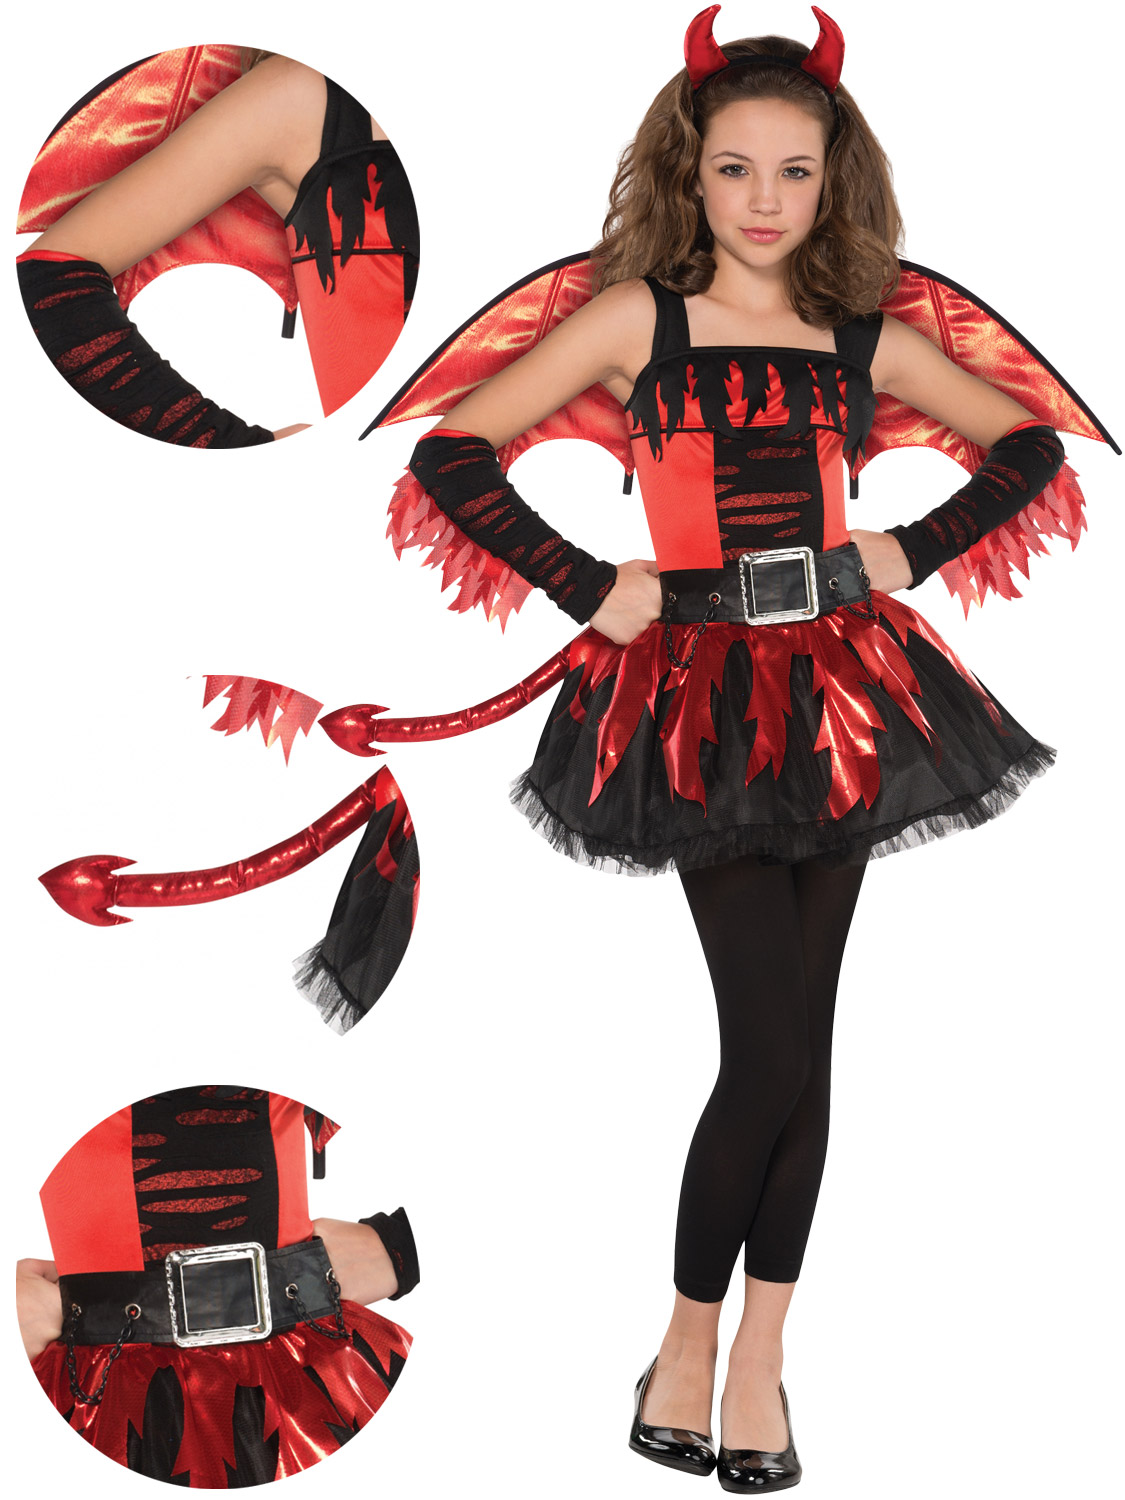 Halloween Costumes For Girls Age 11 12.Details About Teen Daredevil Costume Girls Red Devil Halloween Fancy Dress Costume Kids Outfit